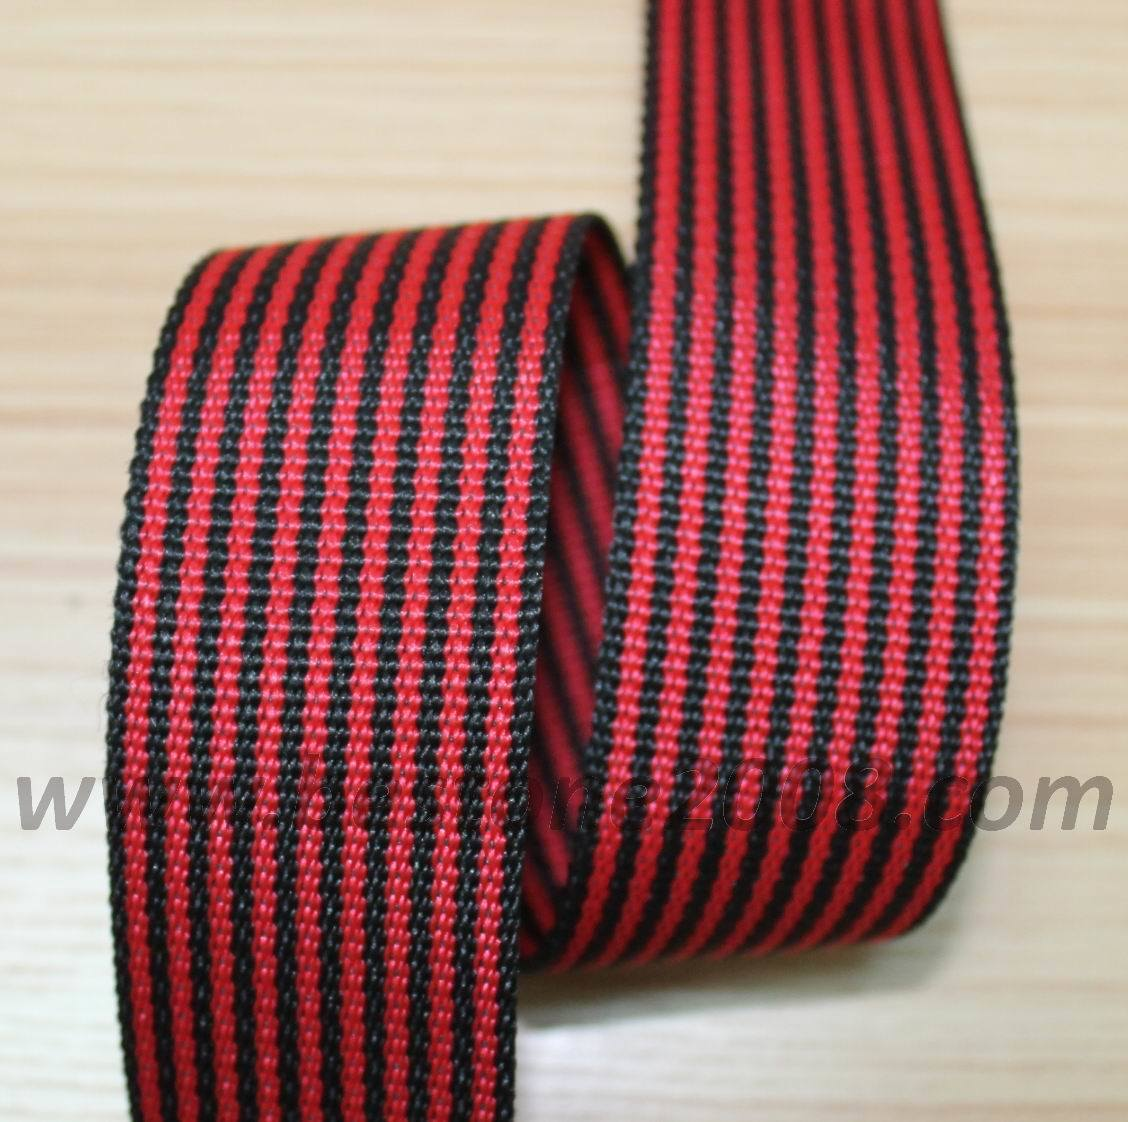 High Quality PP Webbing for Bag and Garment #1312-53